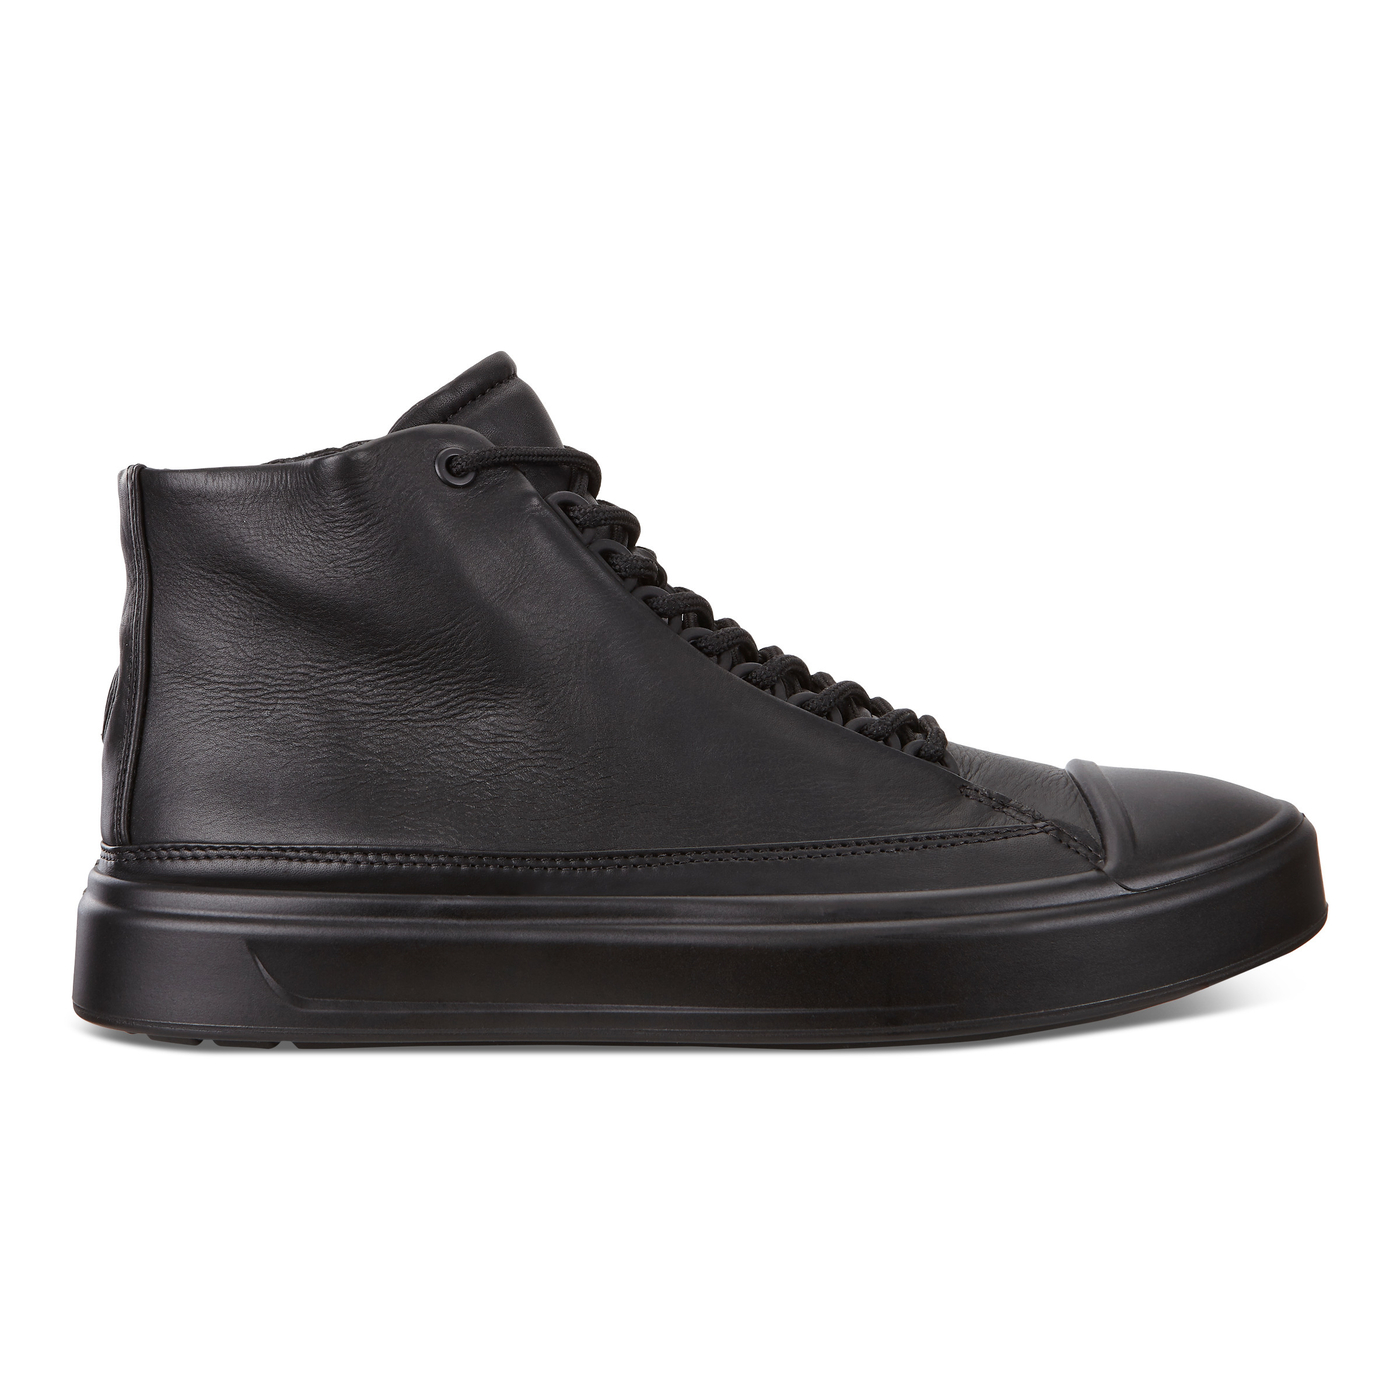 ECCO Flexure T-cap M High Top